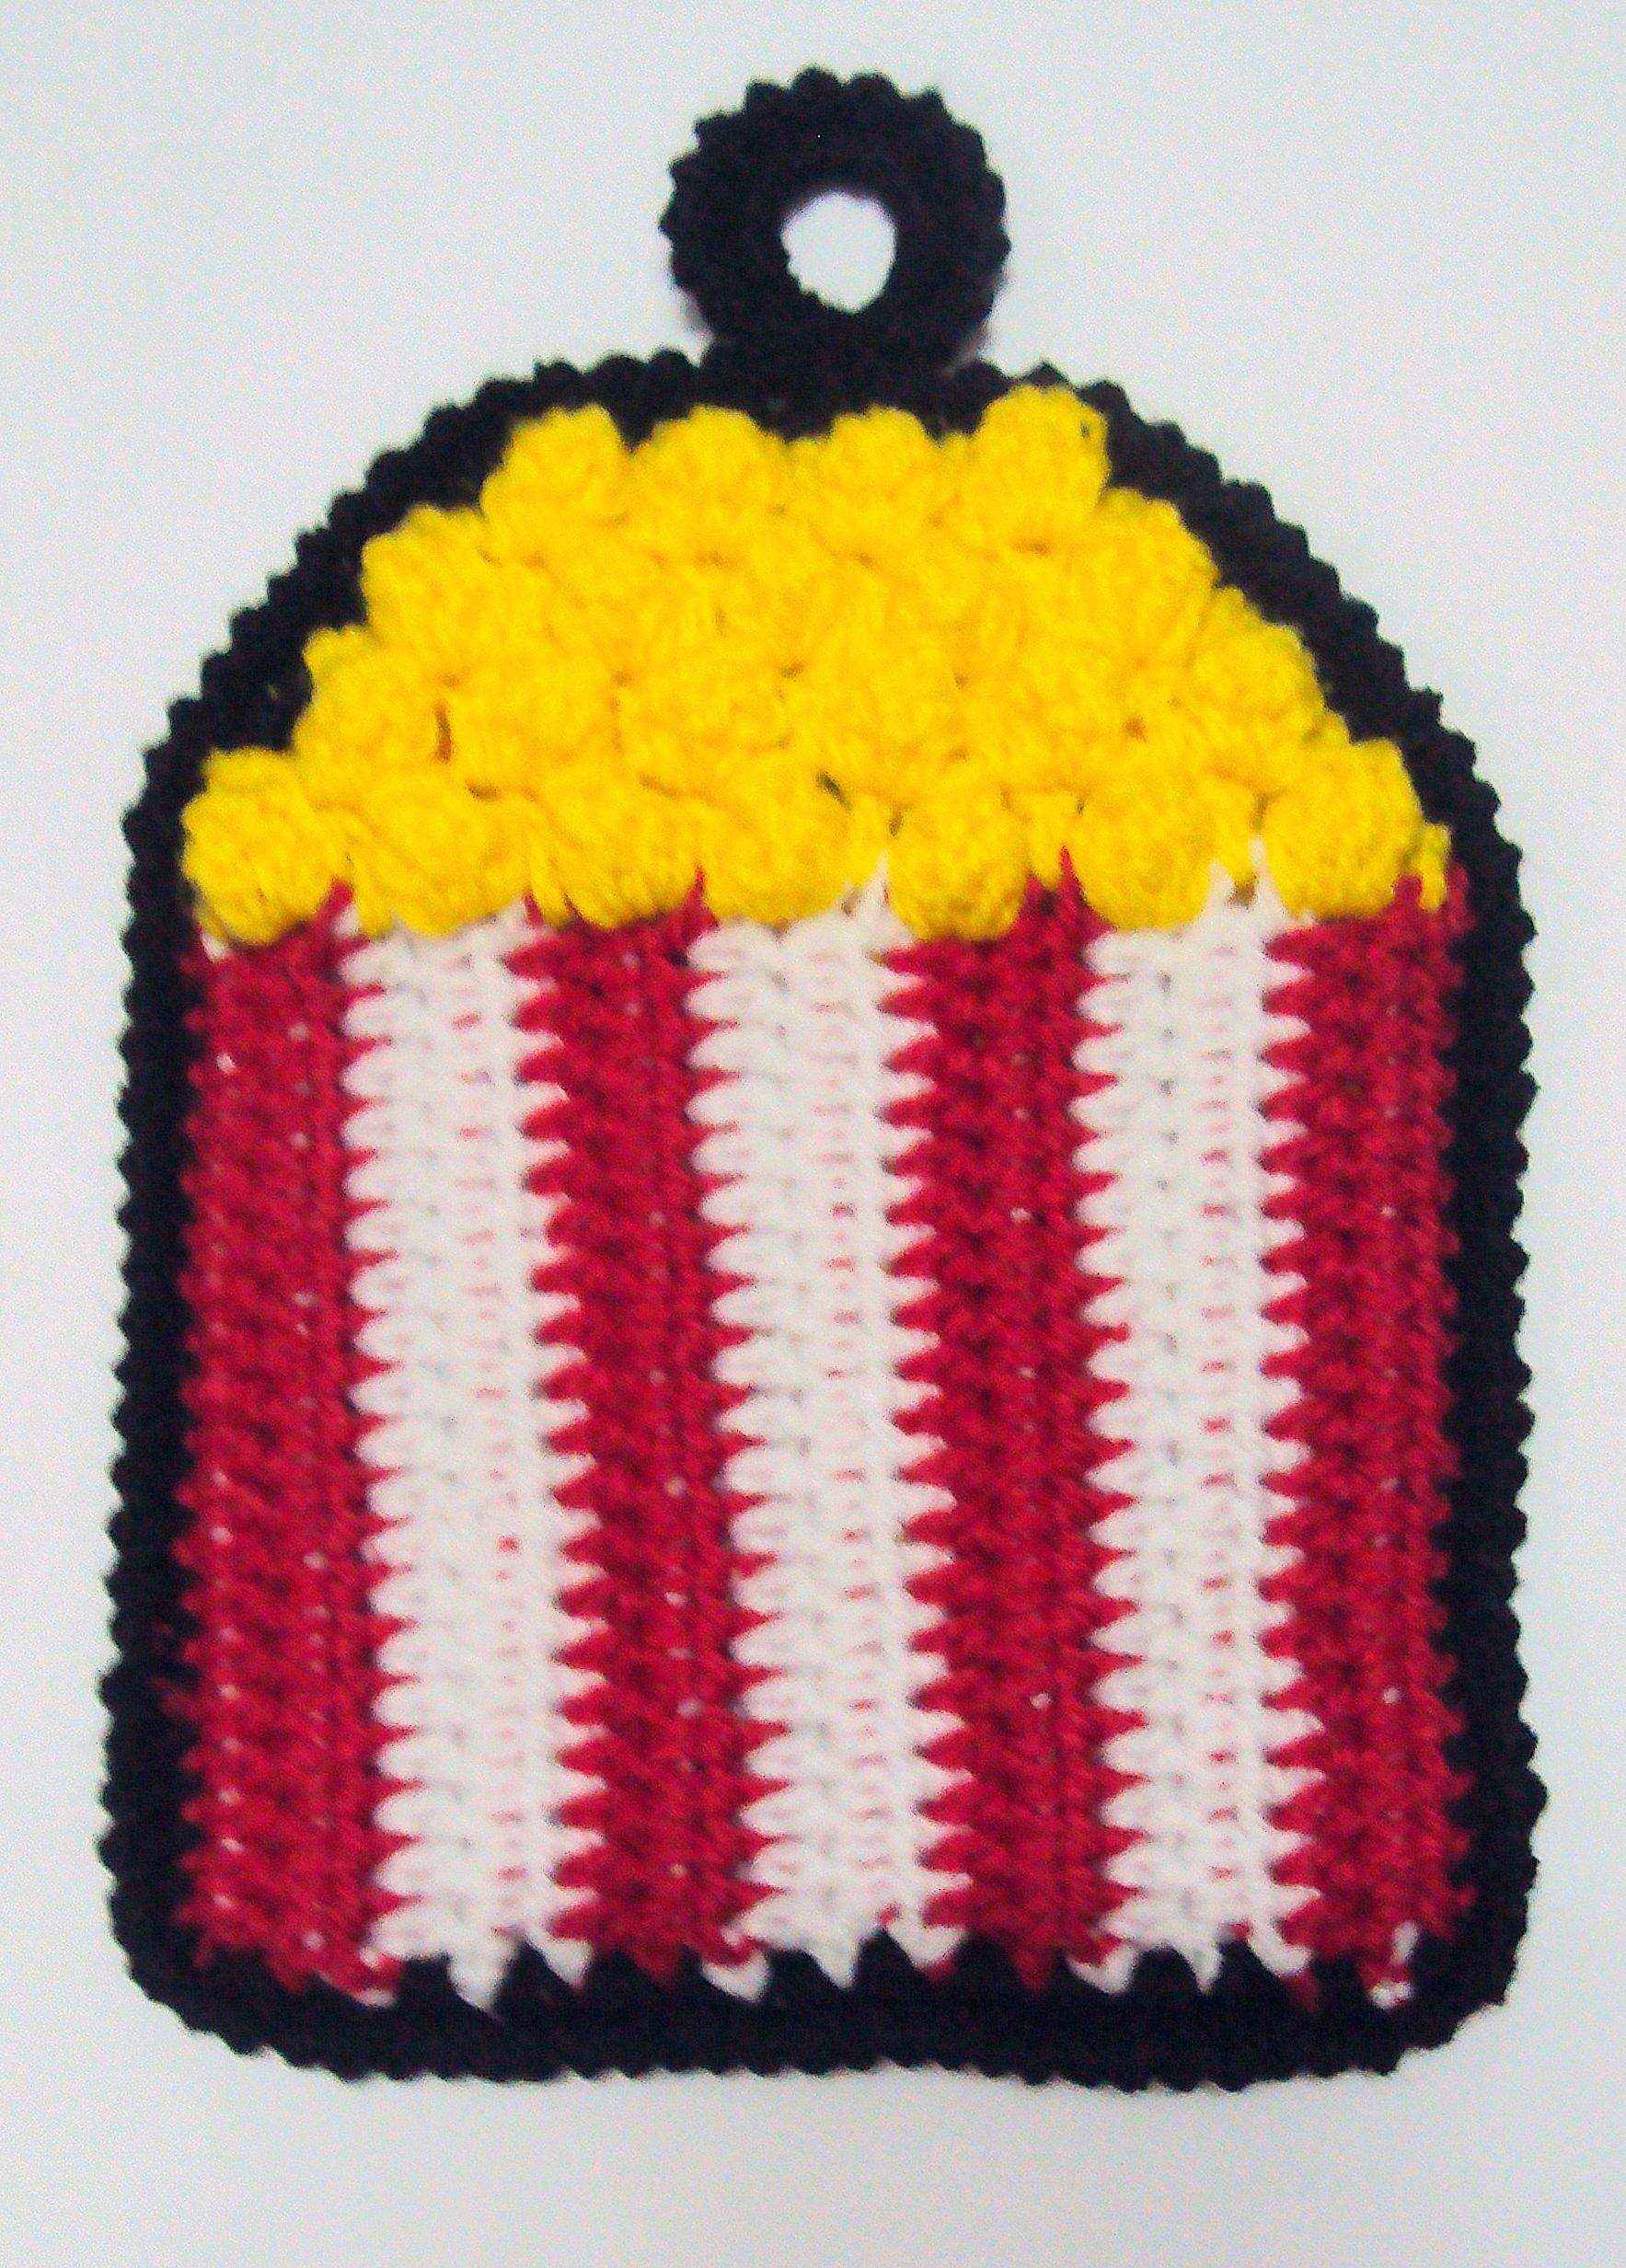 Popcorn Potholder free crochet pattern | To show Grammy ...